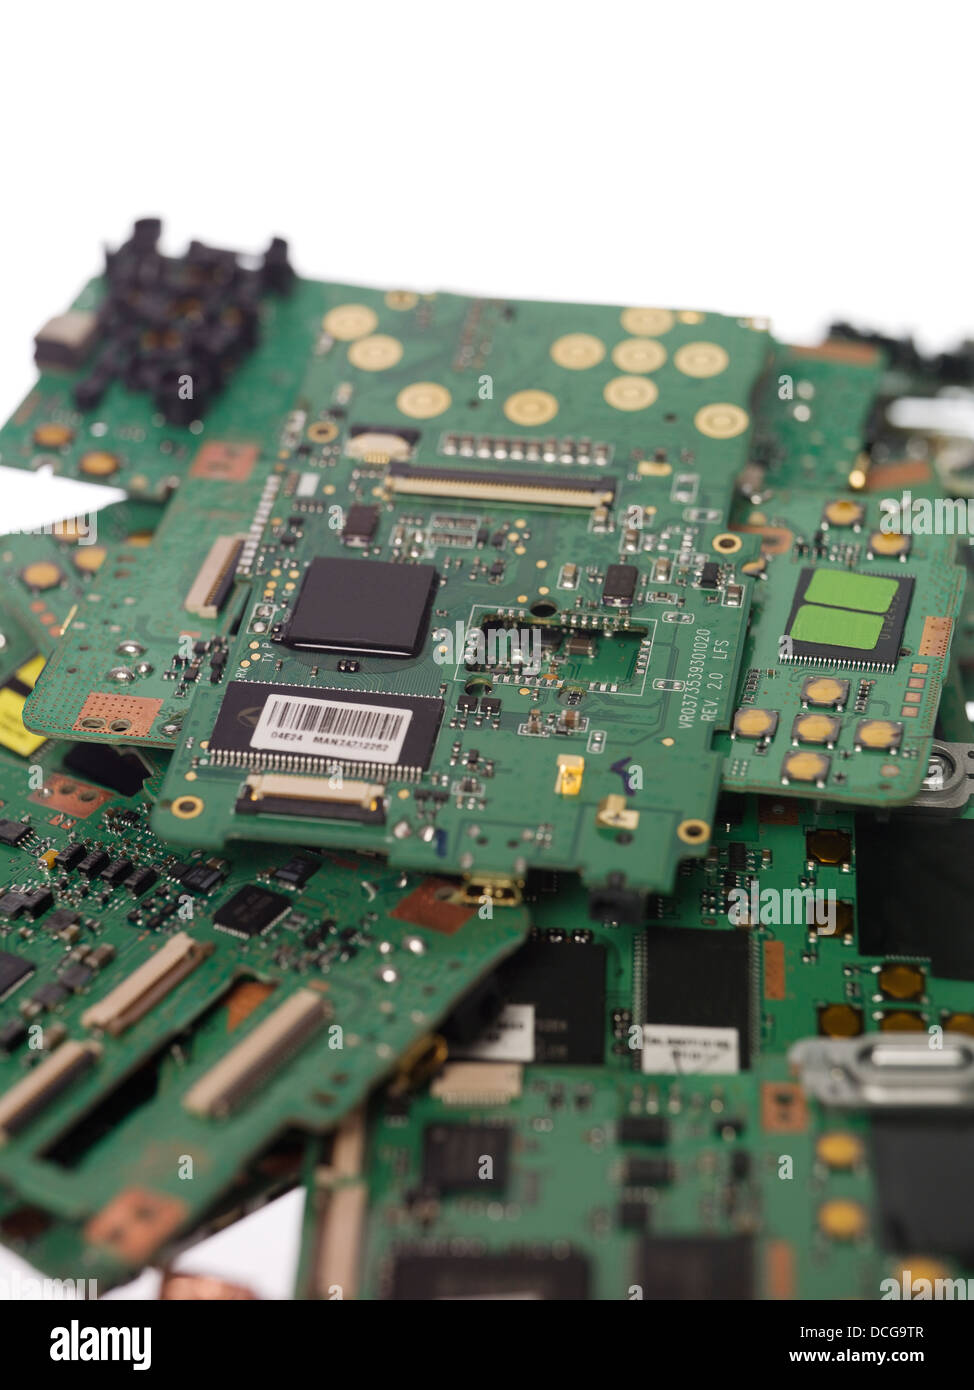 Stack of circuit boards - Stock Image